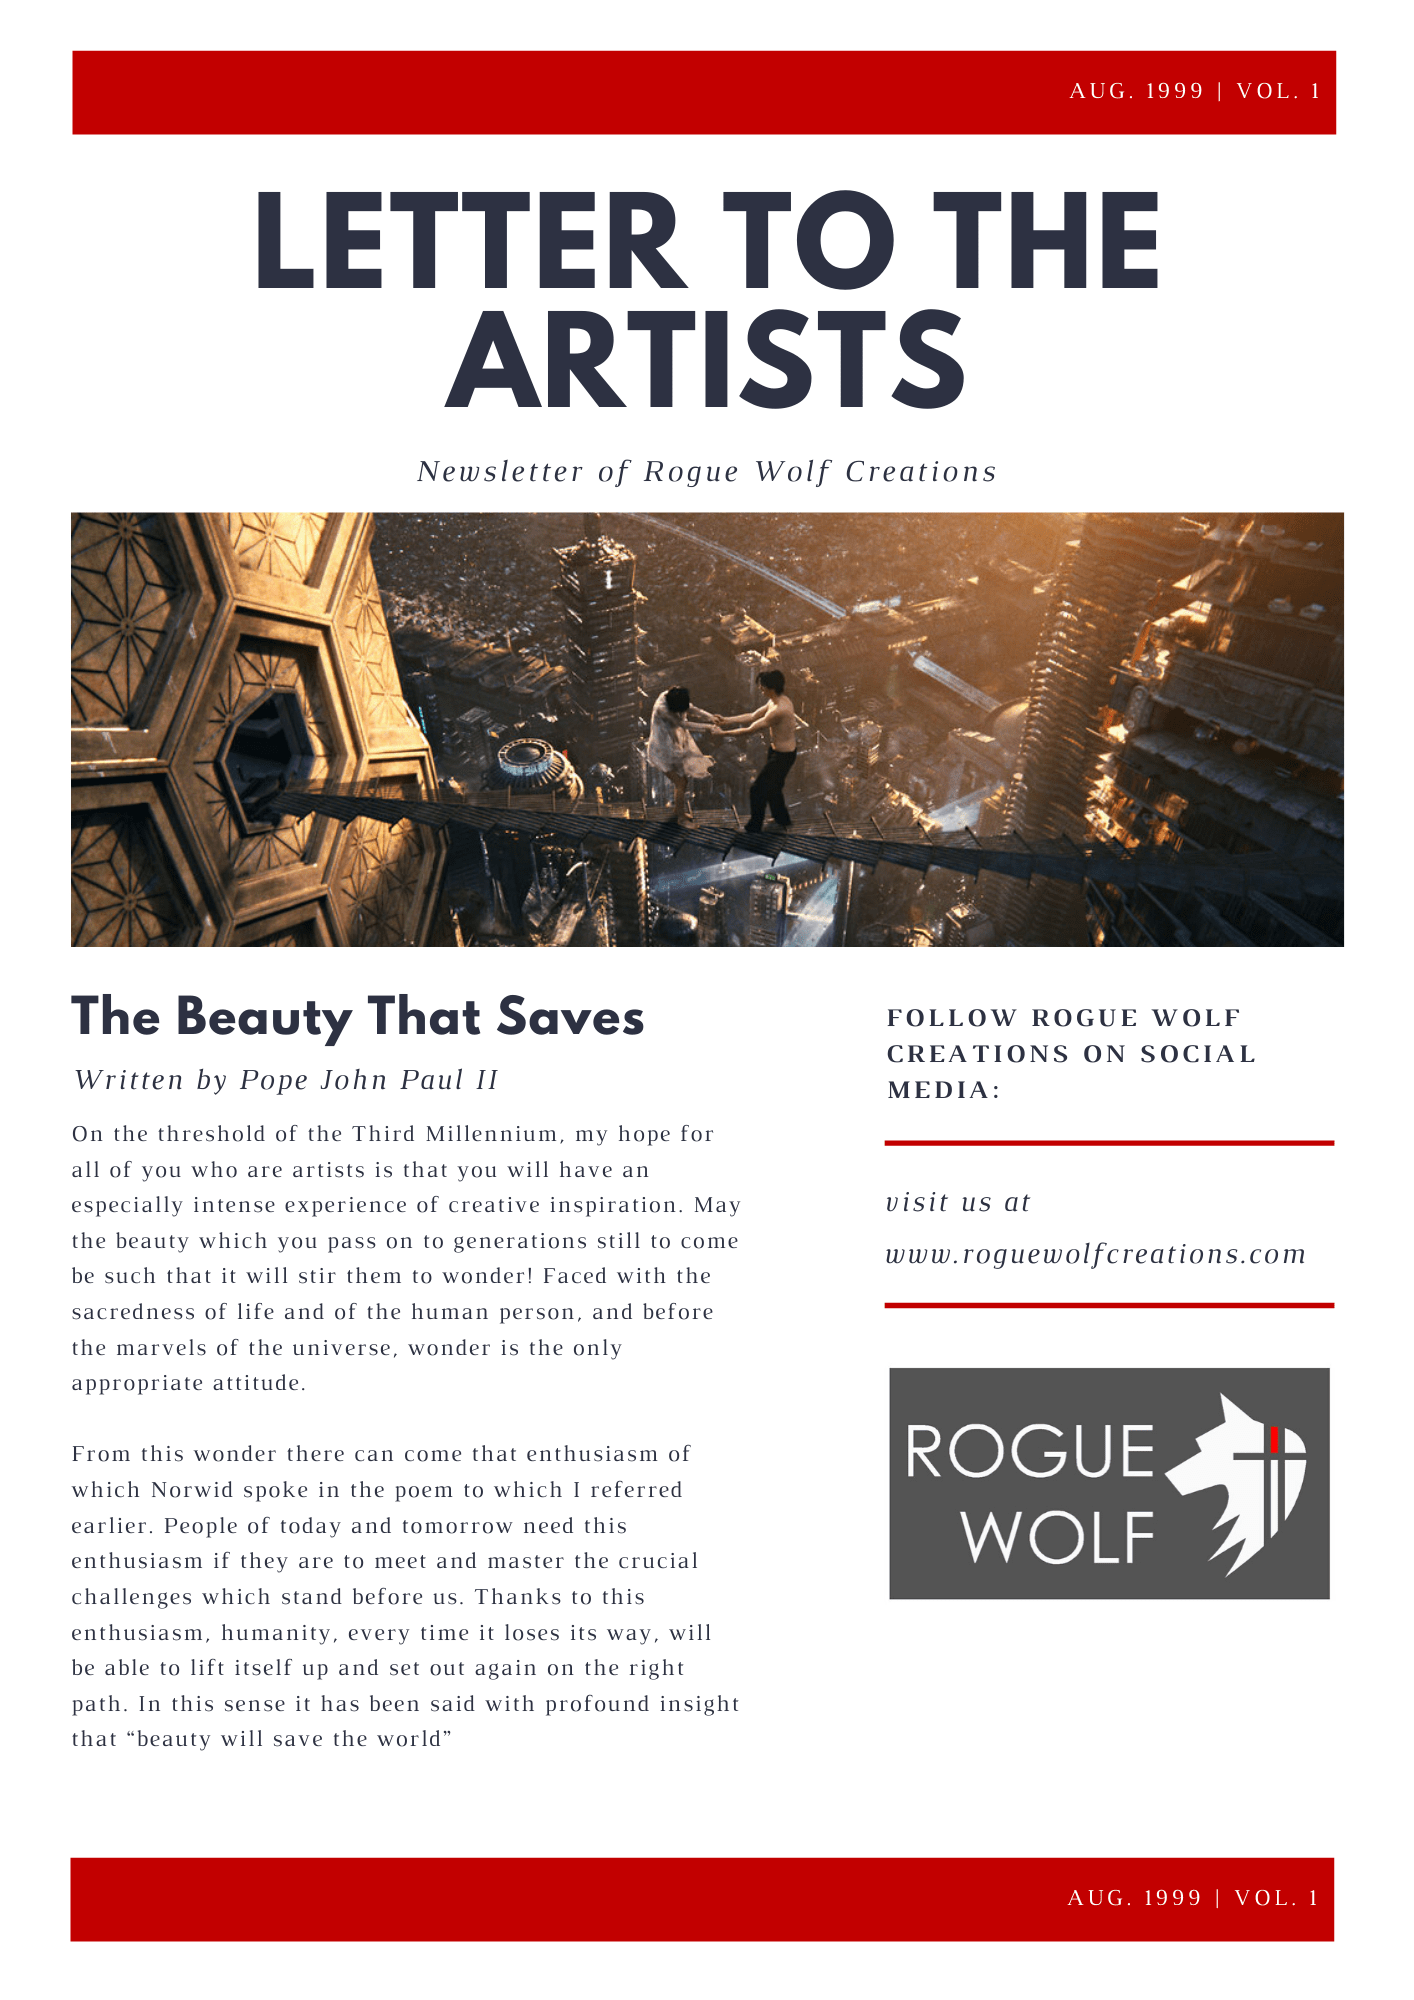 ROGUE WOLF CREATIONS